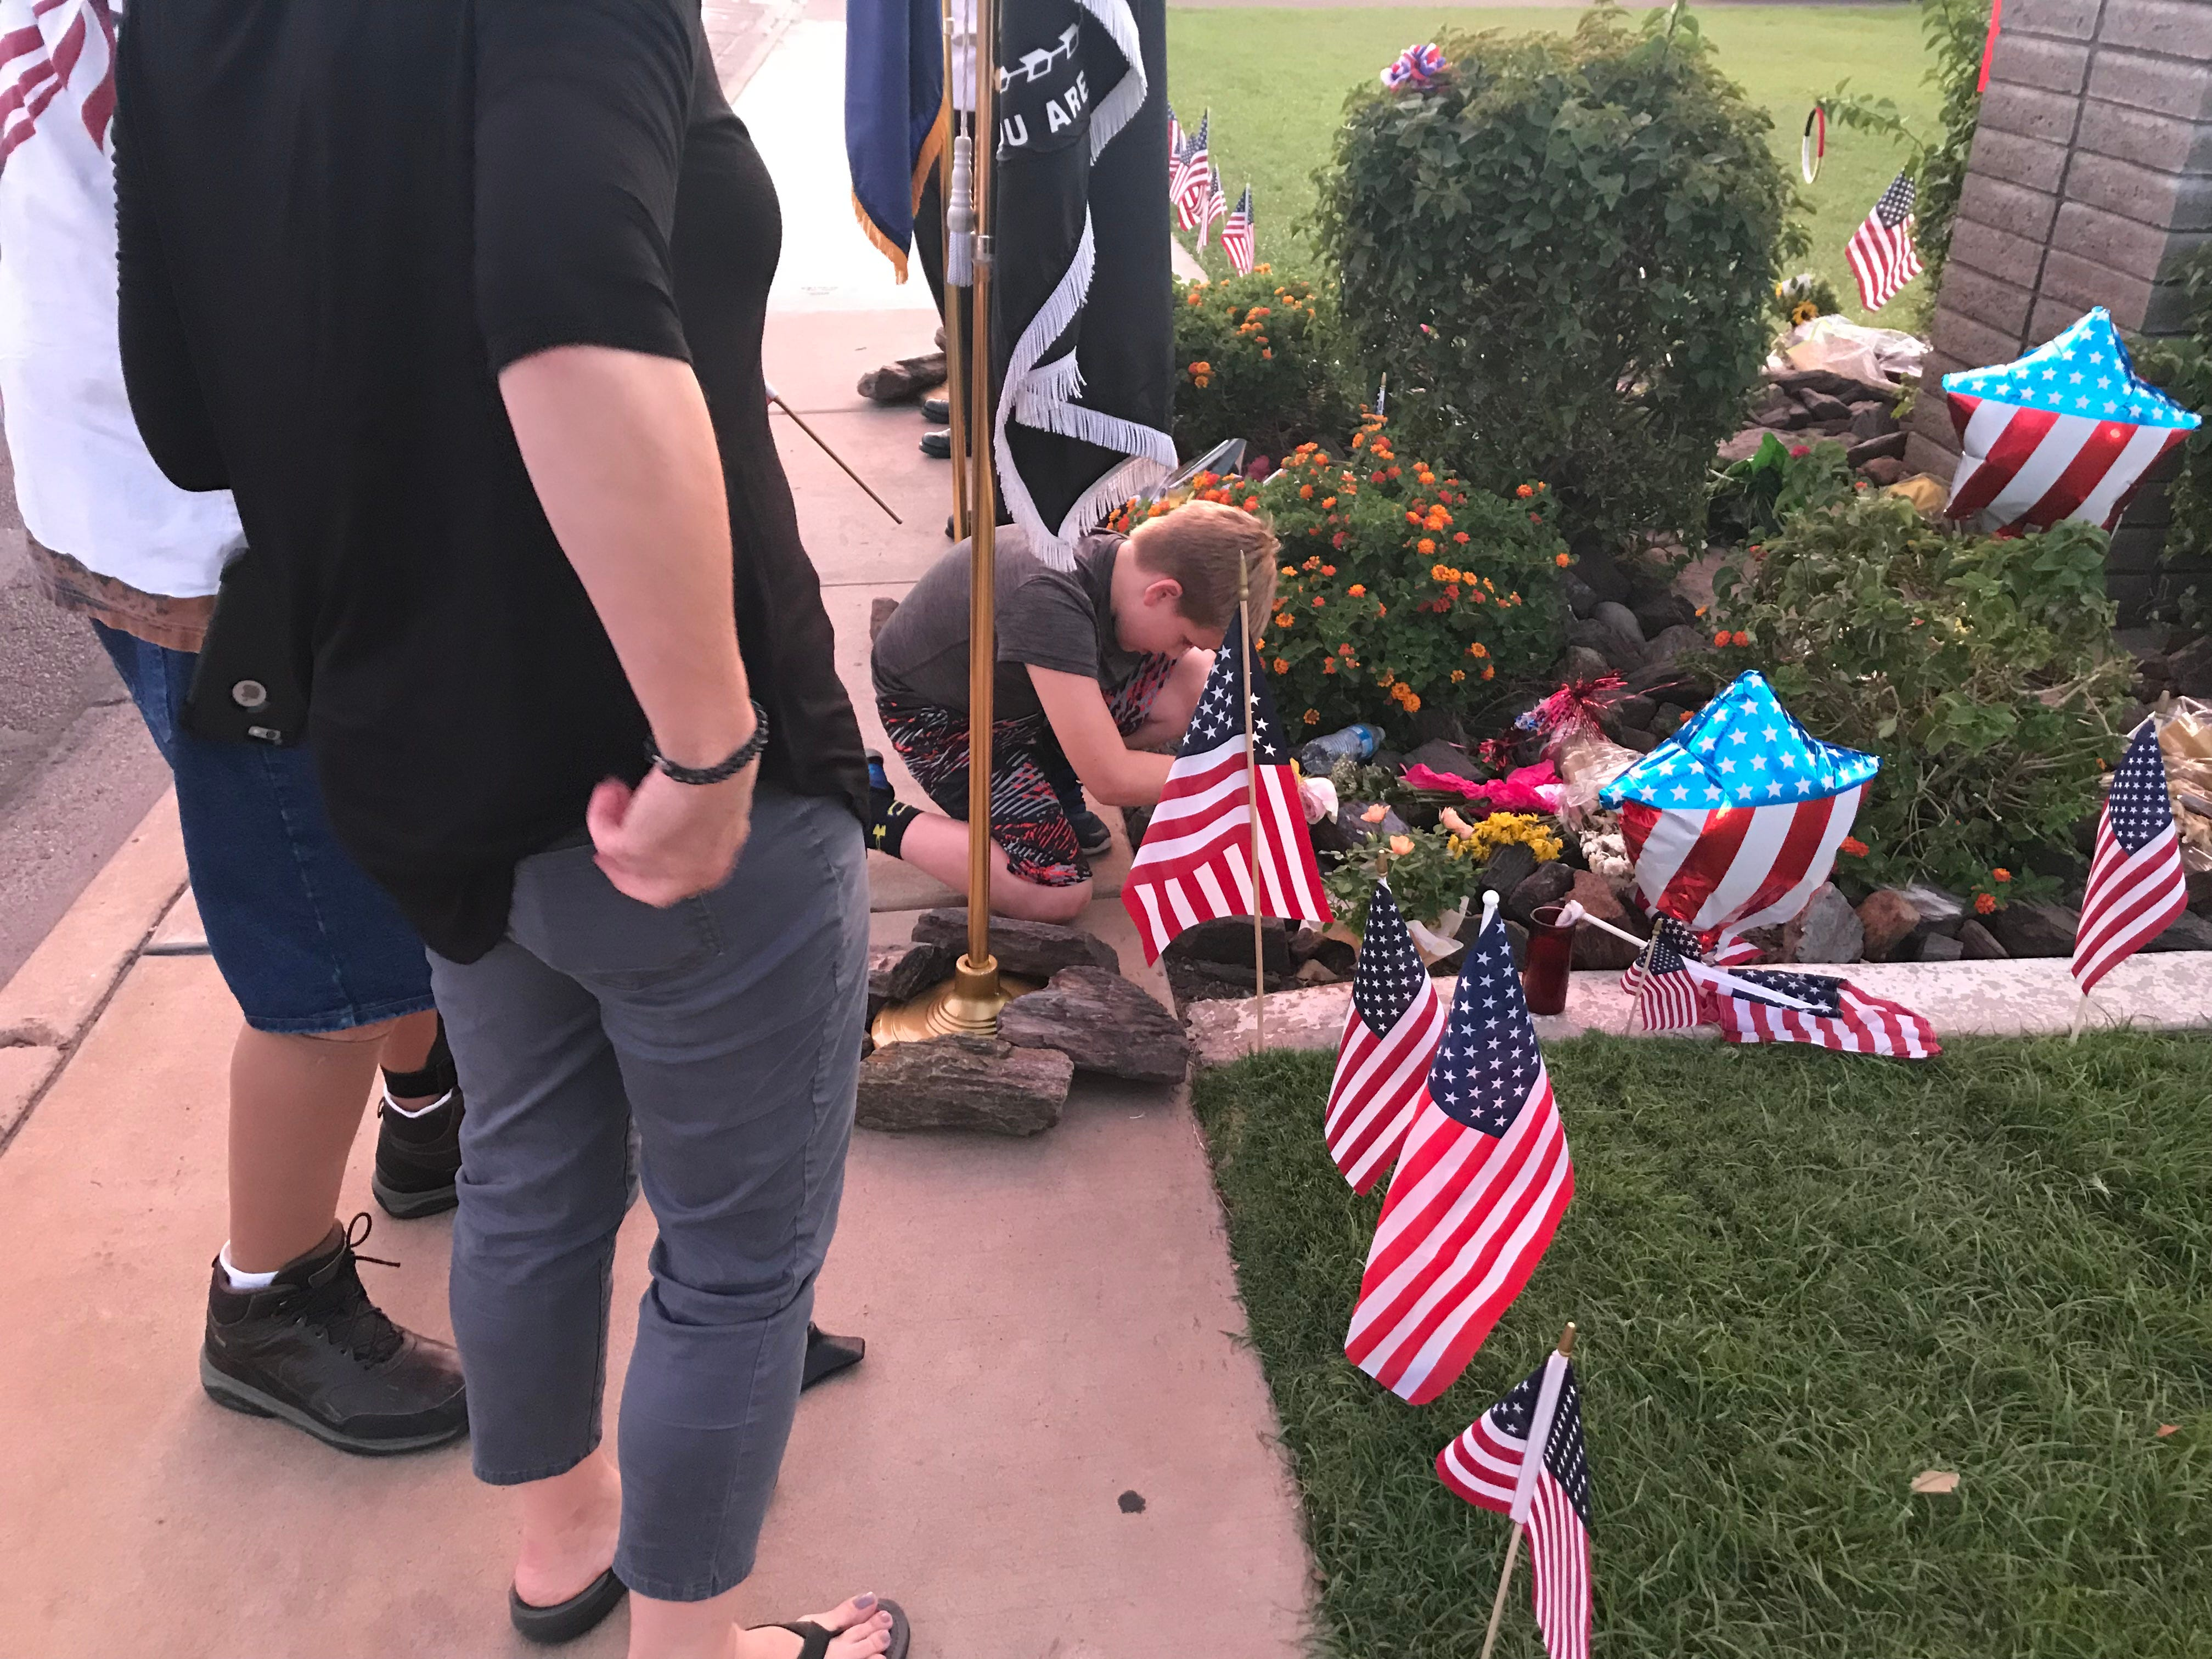 Boy pays respects to McCain by setting flag down at Phoenix Mortuary.